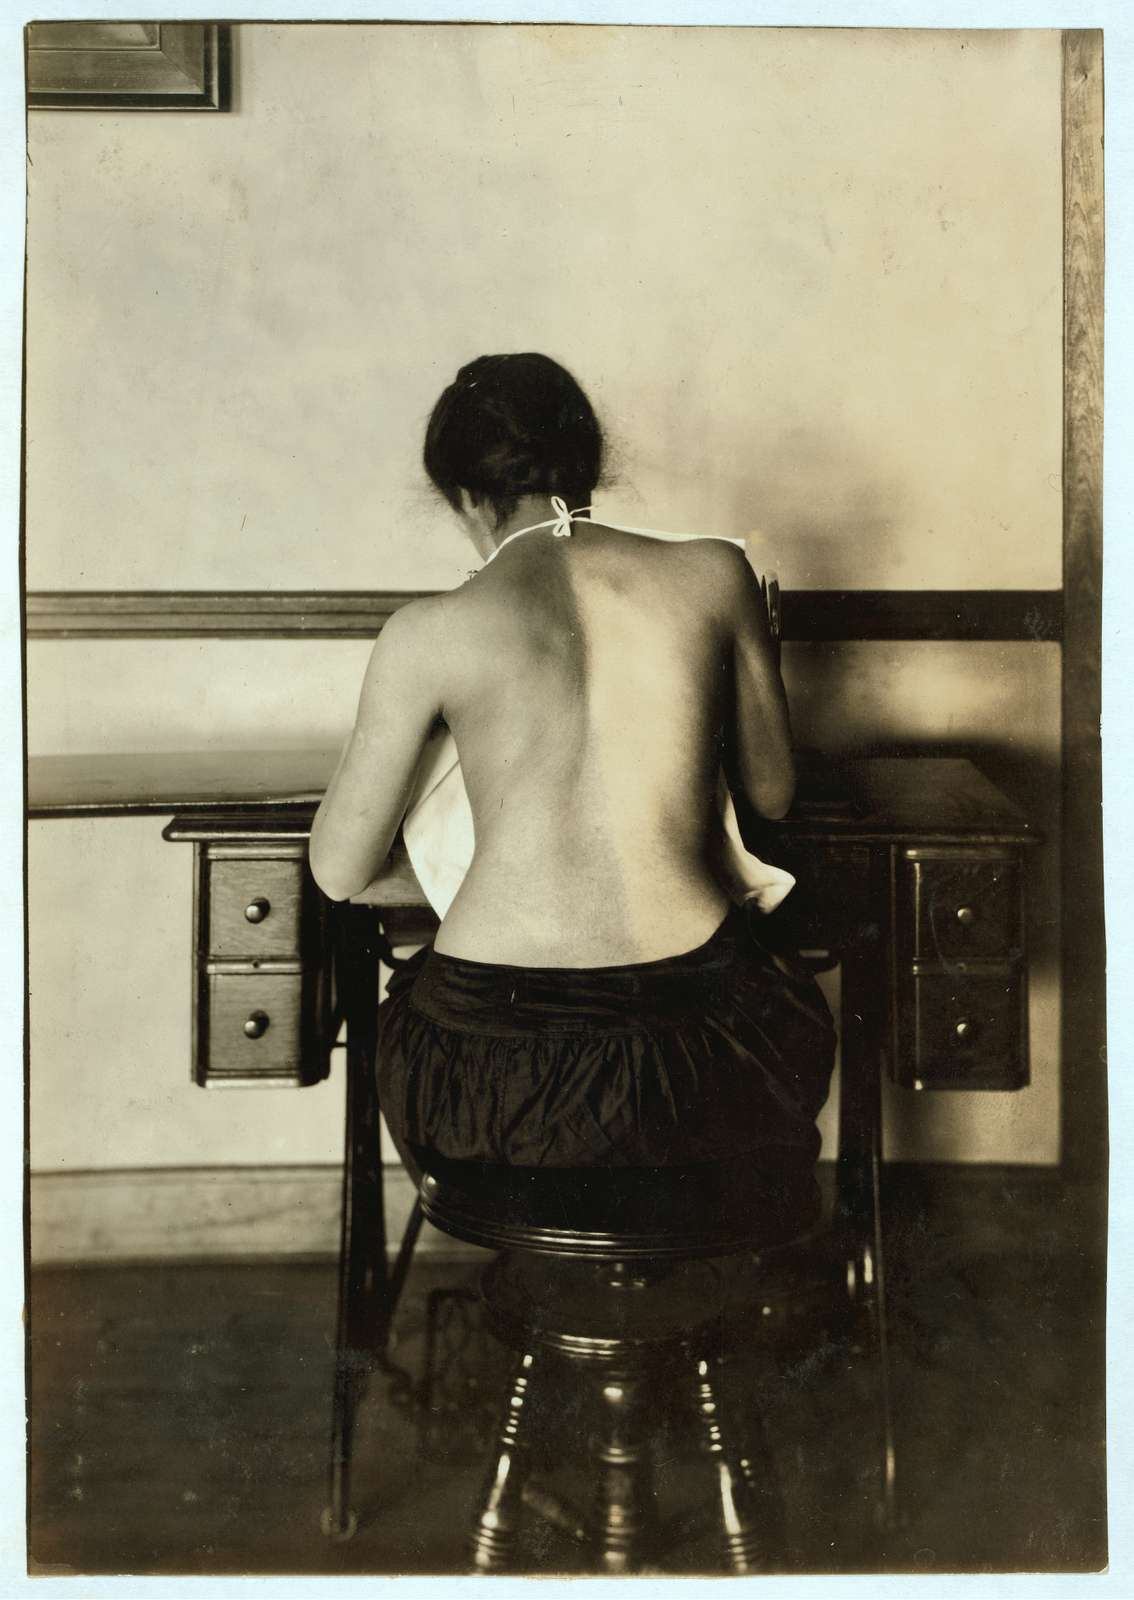 Mildred Benjamin, 17 years old. Right dorsal curvature. Scoliosis. Right shoulder higher than left. Shows incorrect position required to perform this kind of work. Stopping use of right arm. See 4667, 4671 & 4672. Location: Boston, Massachusetts Lewis W. Hine